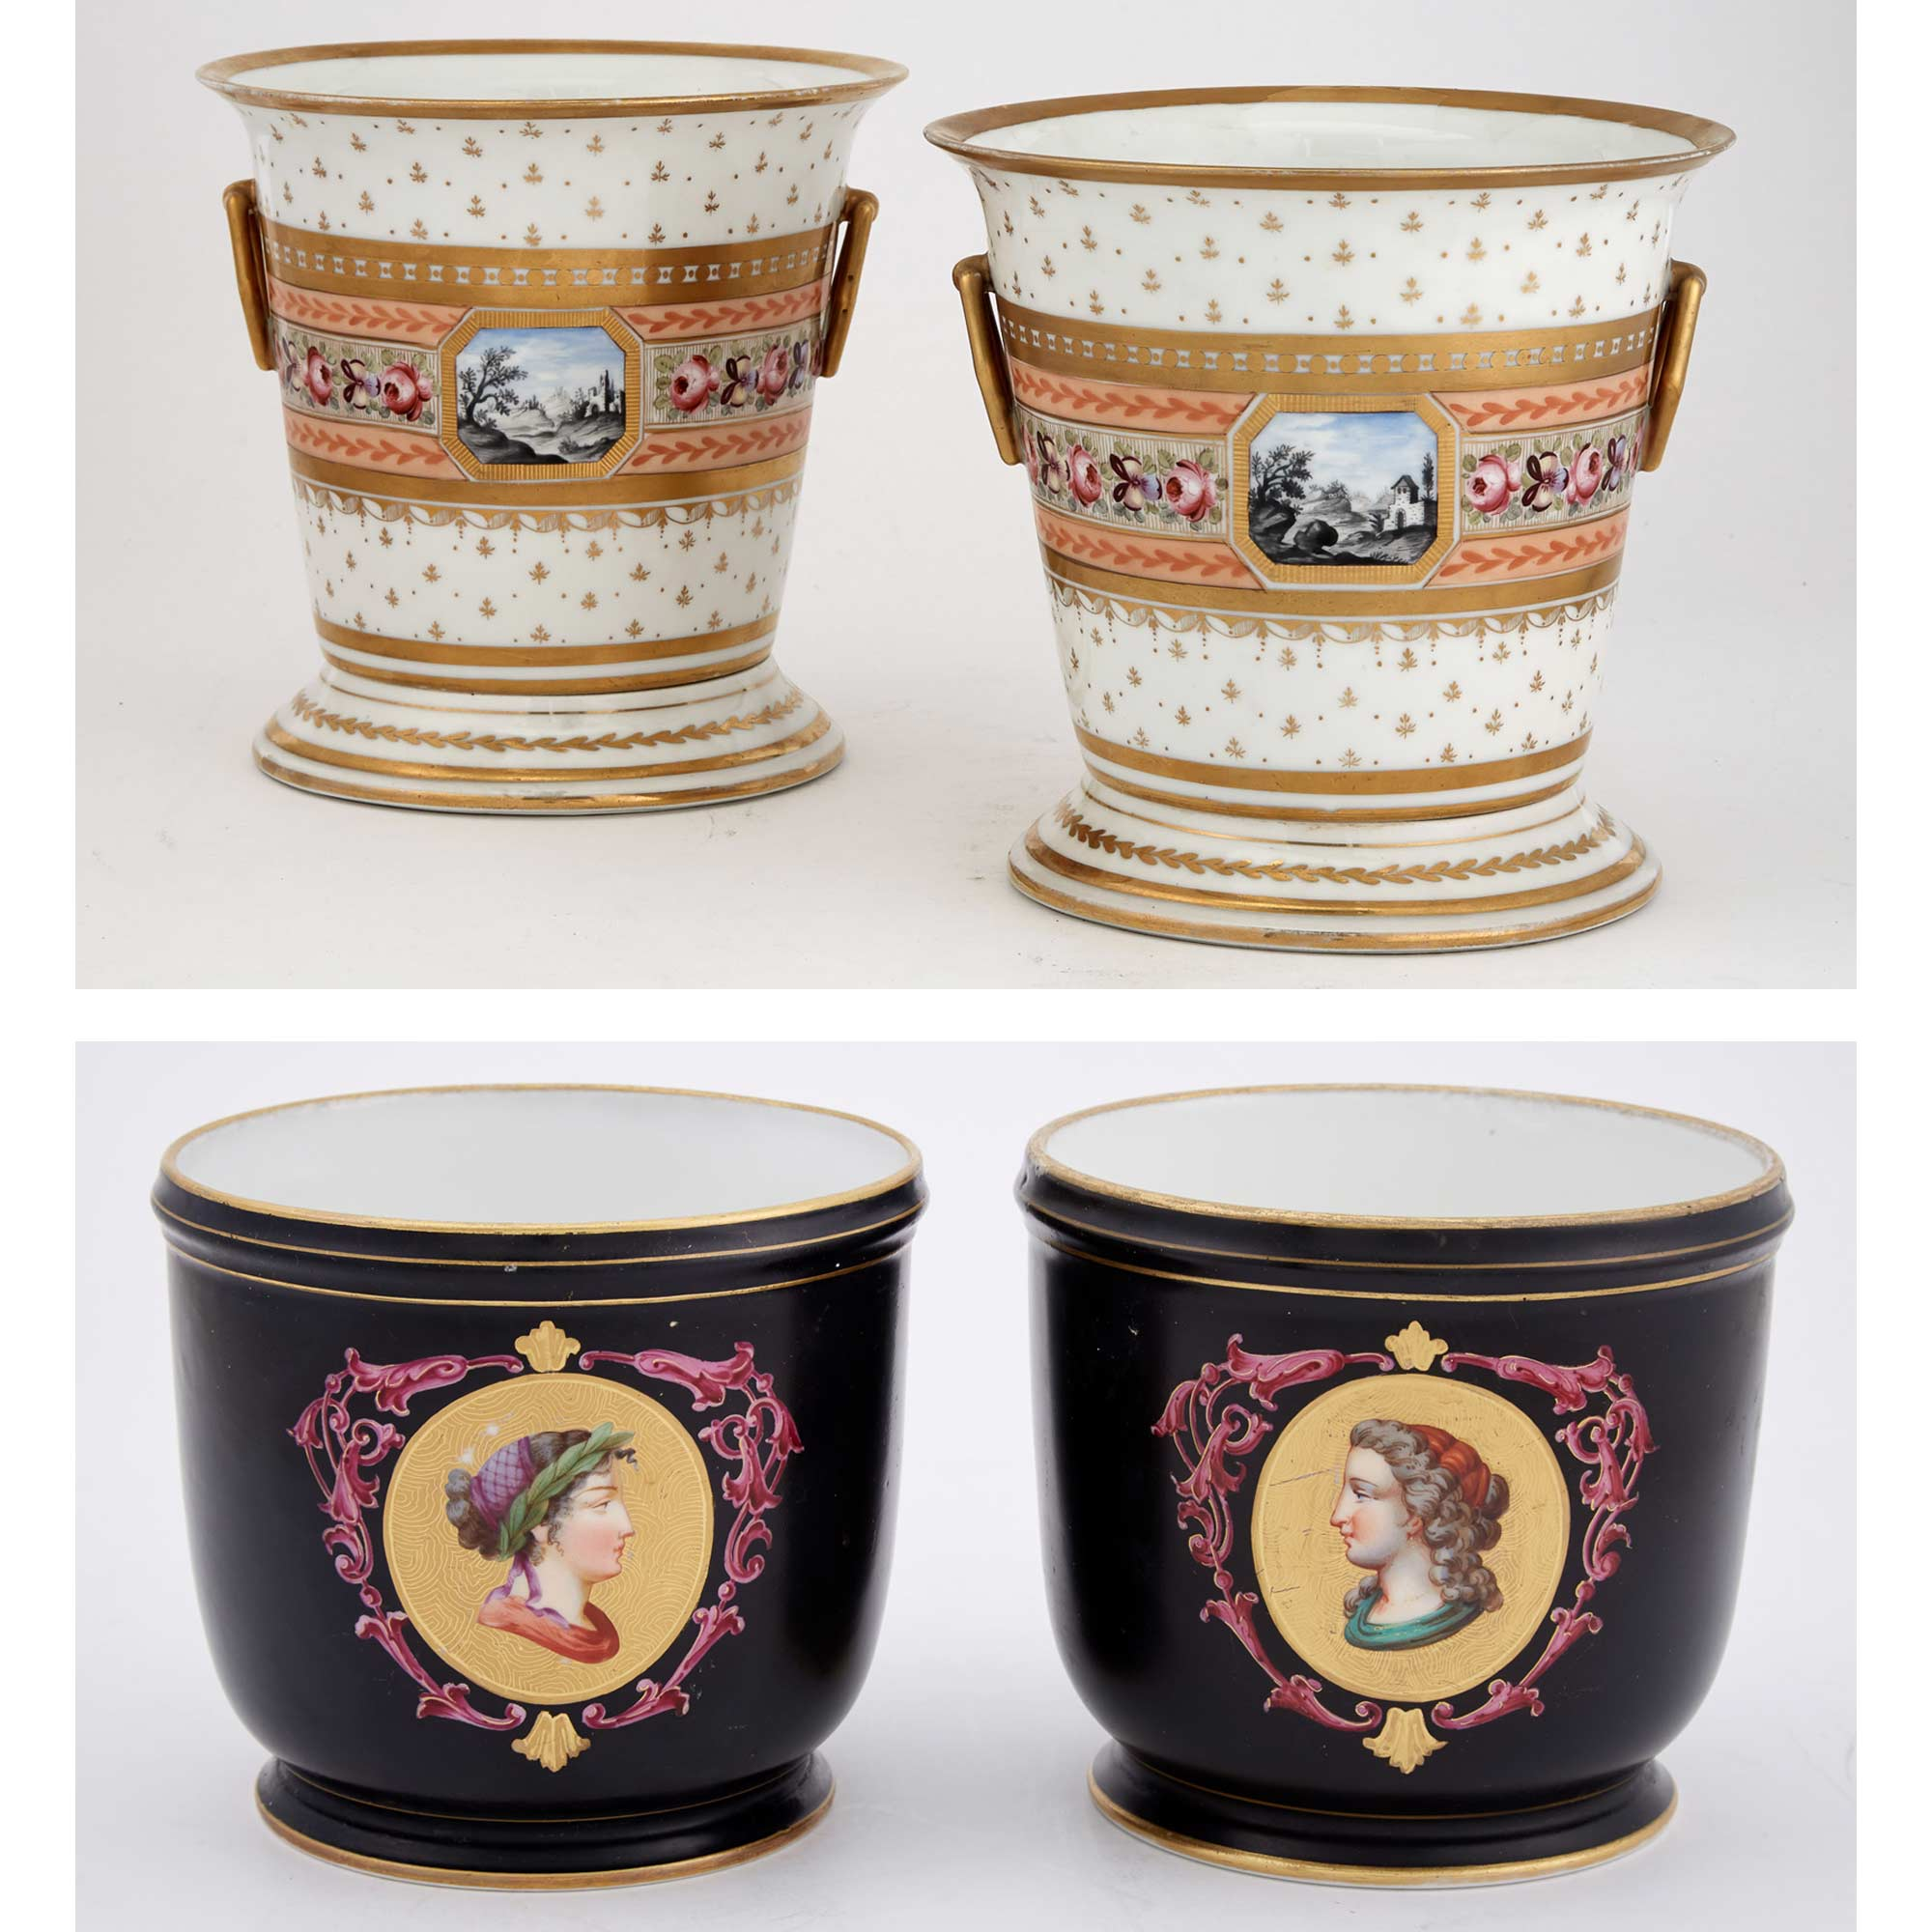 Lot image - Pair of Paris Porcelain Gilt-Decorated Cache-Pots on Stands; Together with a Pair of Sèvres Style Floral Decorated Black Ground Porcelain Cache-Pots